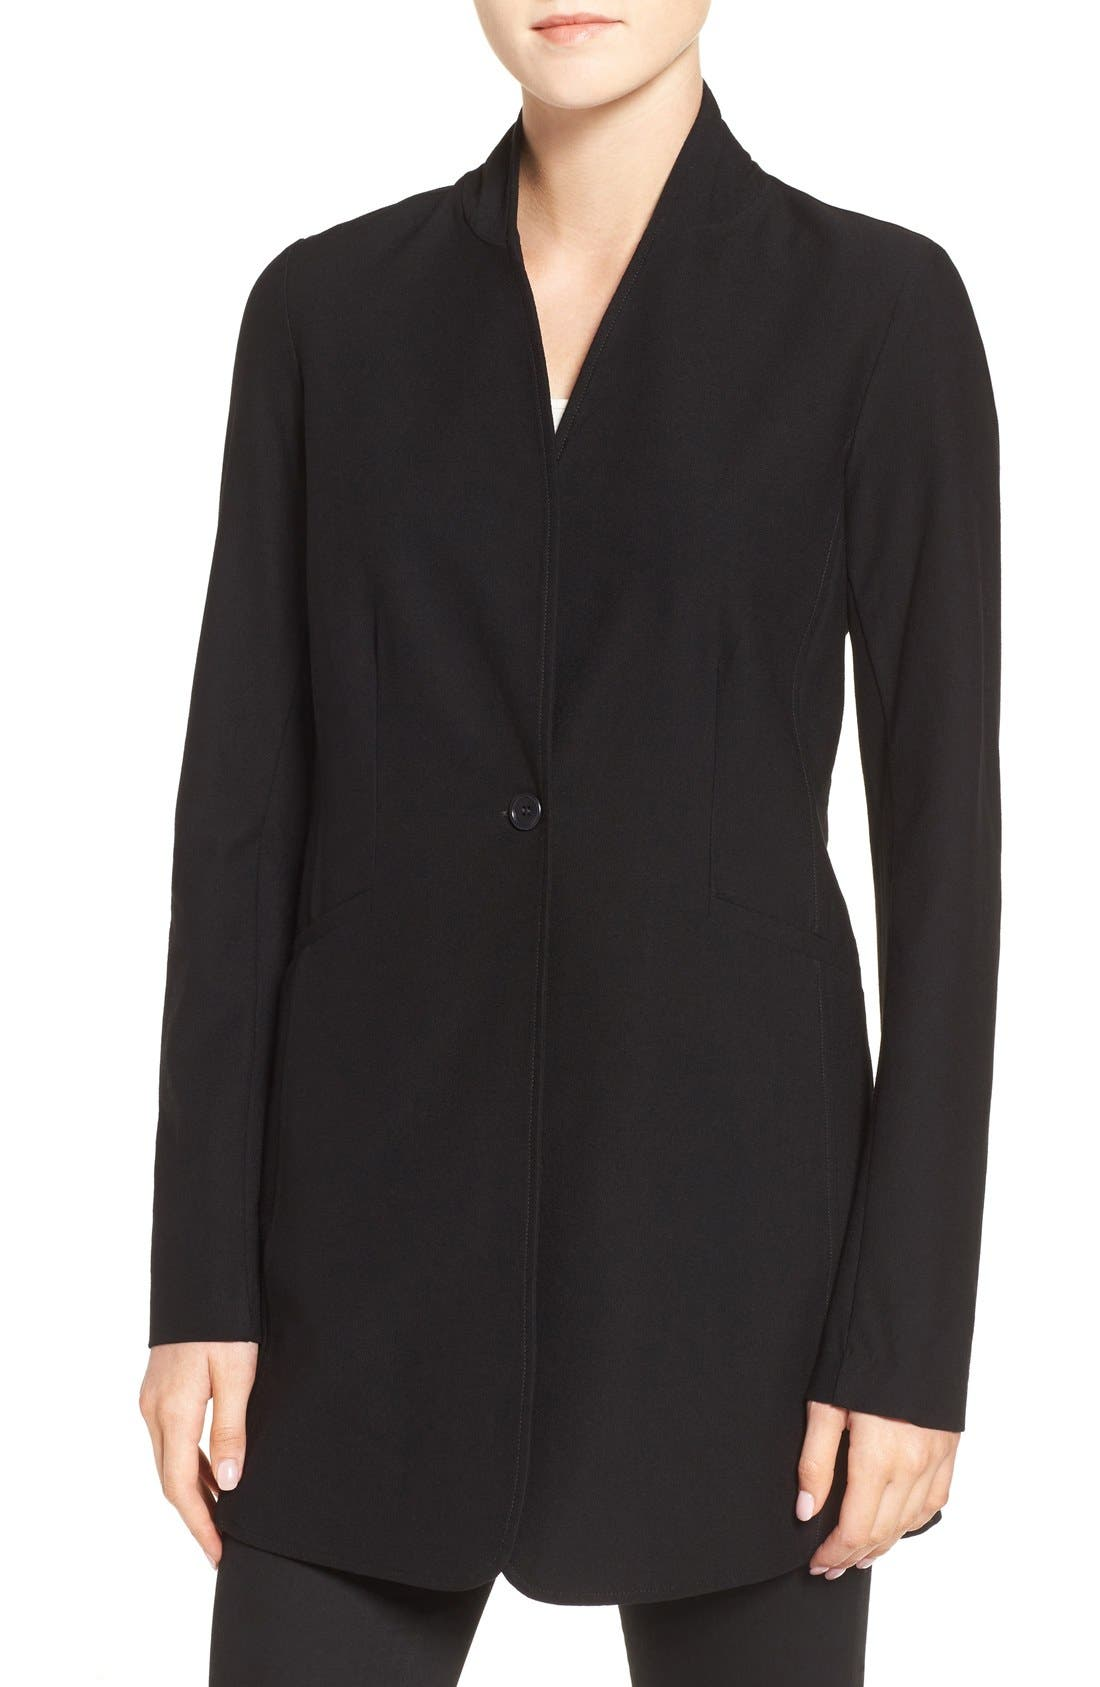 Alternate Image 1 Selected - Eileen Fisher Washable Stretch Crepe Stand Collar Jacket (Regular & Petite)